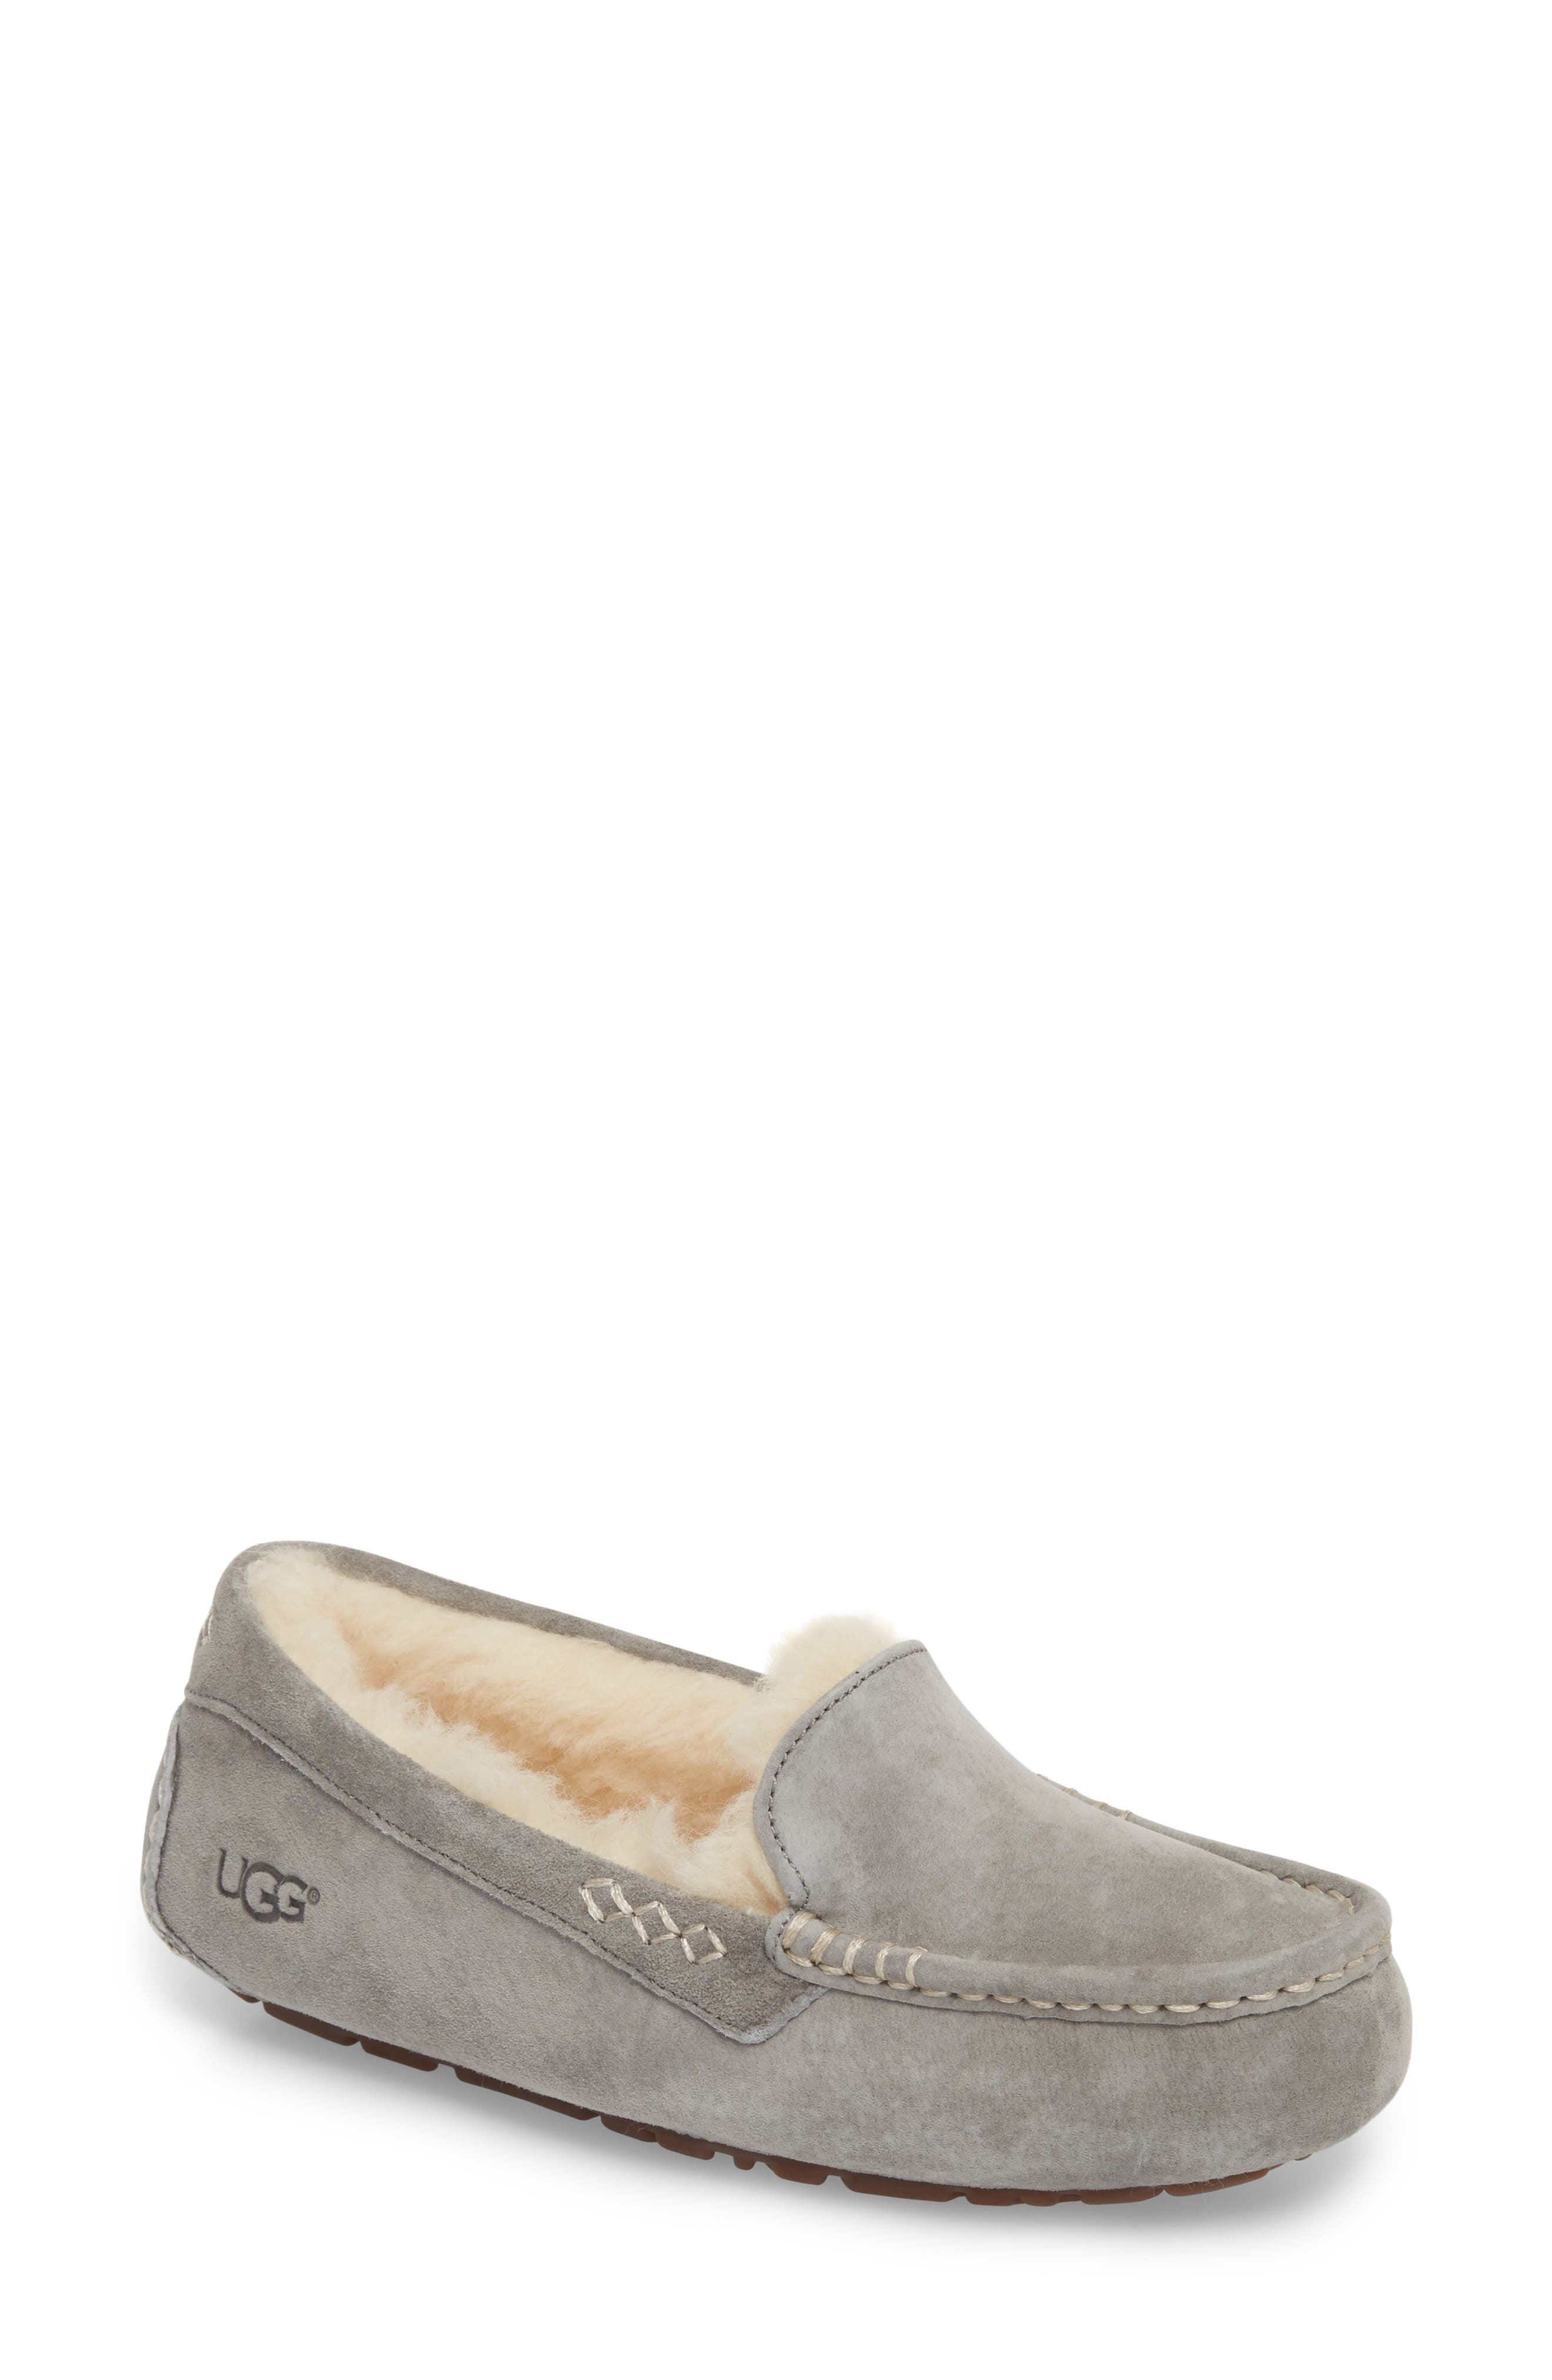 UGG<SUP>®</SUP>, Ansley Water Resistant Slipper, Main thumbnail 1, color, LIGHT GREY